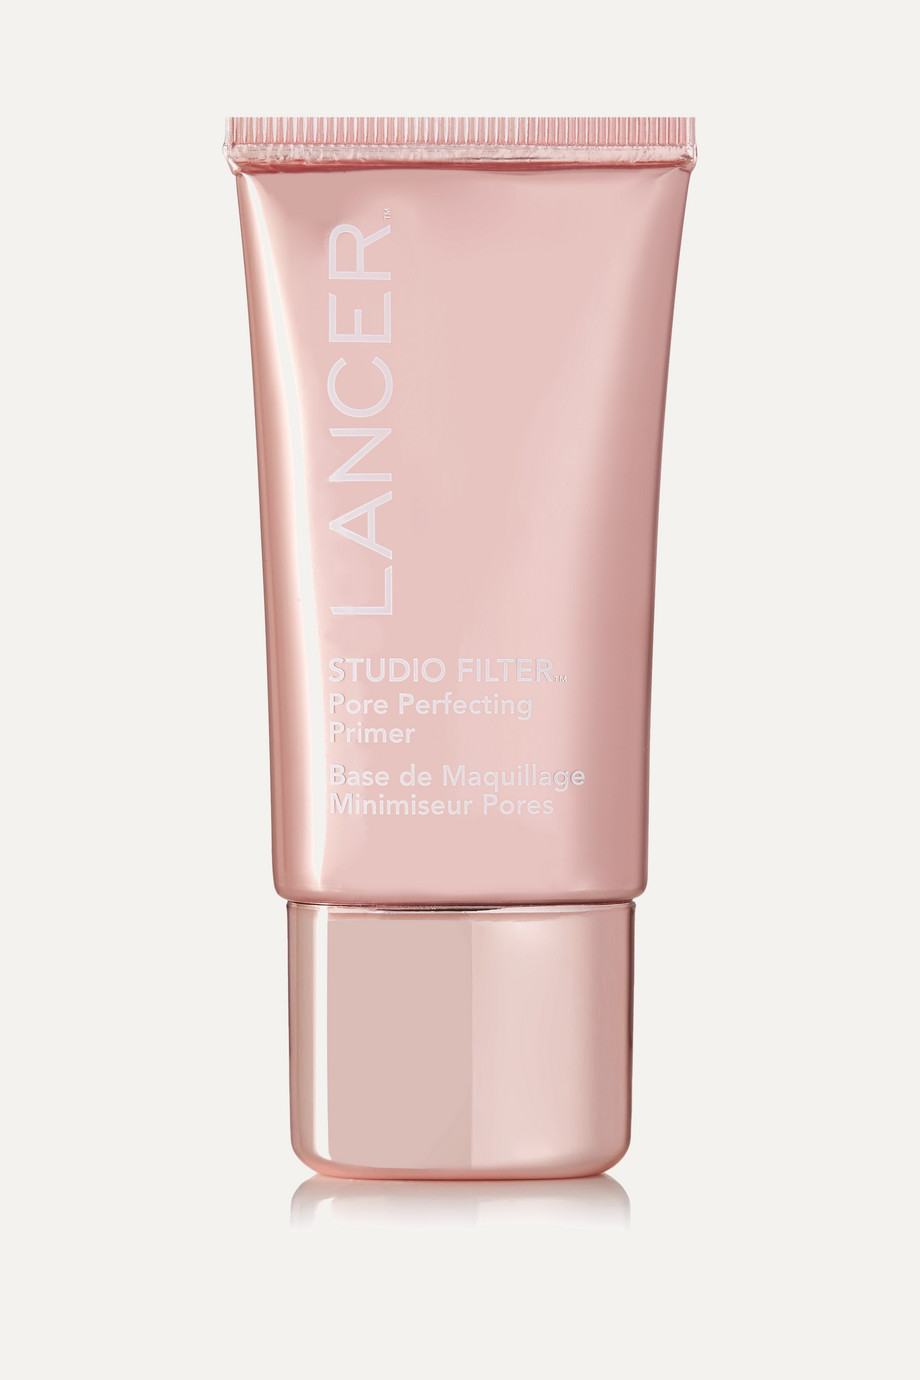 Lancer Studio Filter Pore Perfecting Primer, 30ml